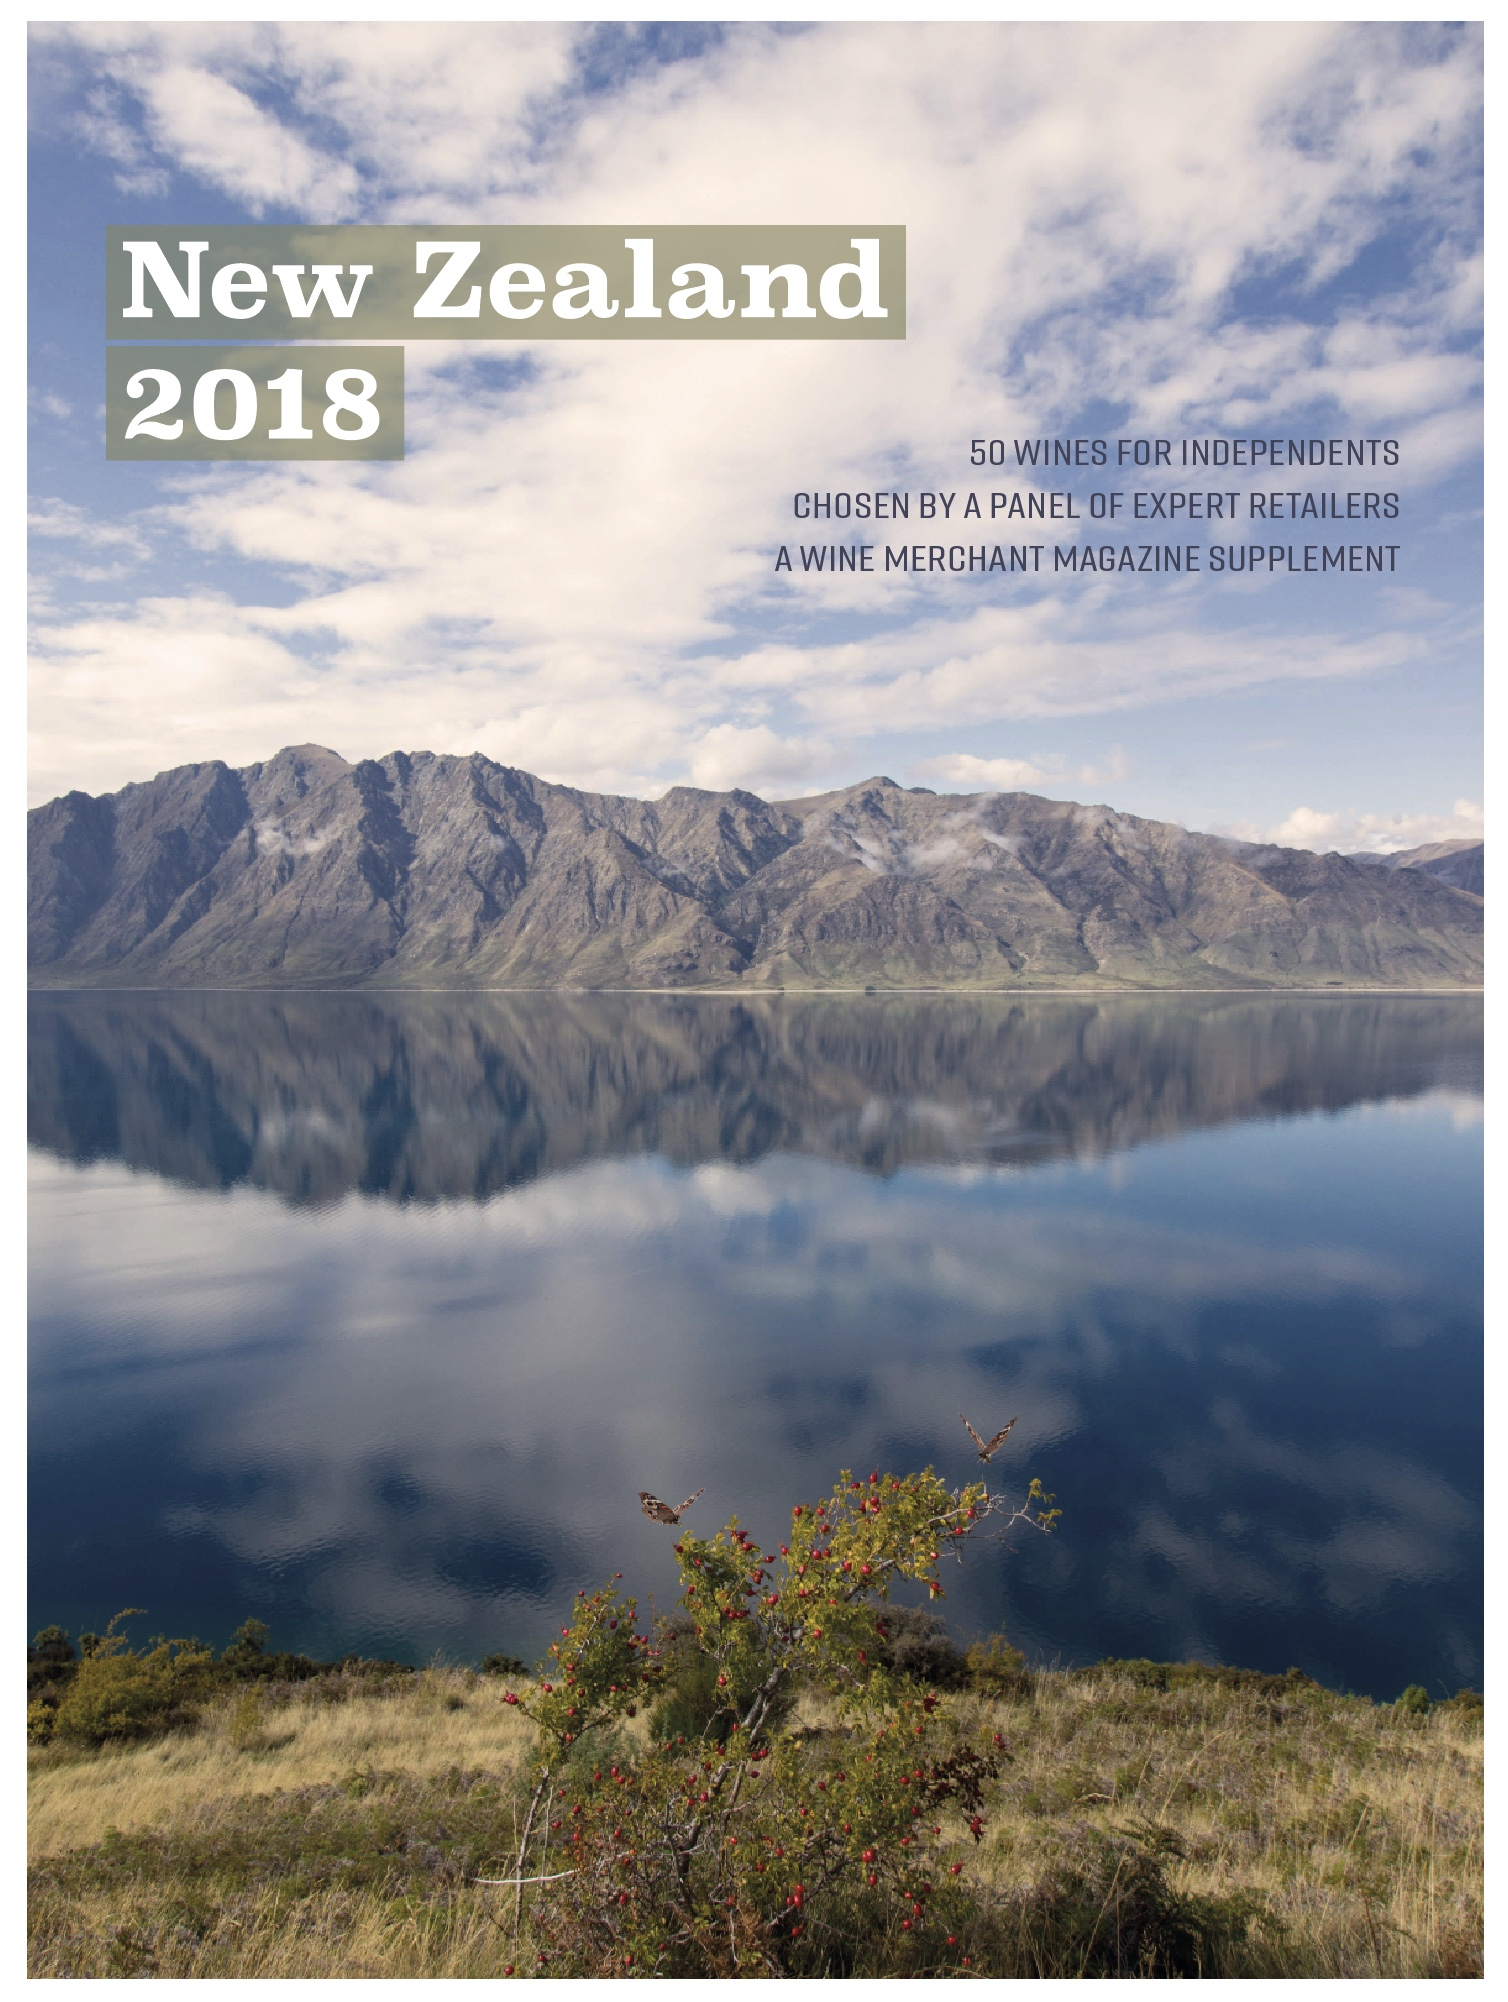 The Wine Merchant New Zealand Supplement 2018